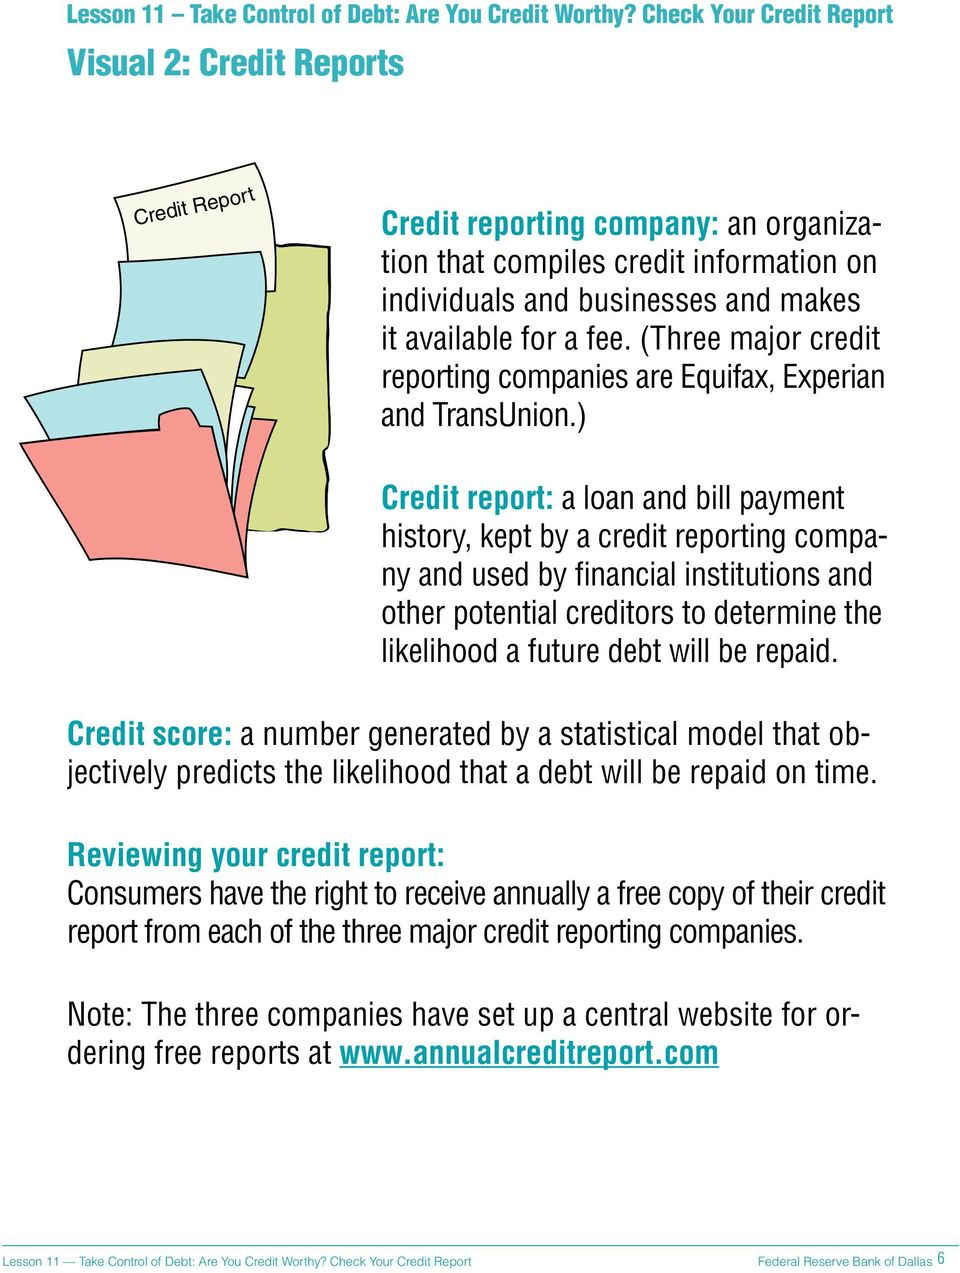 fee. (Three major credit reporting companies are Equifax, Experian and TransUnion.